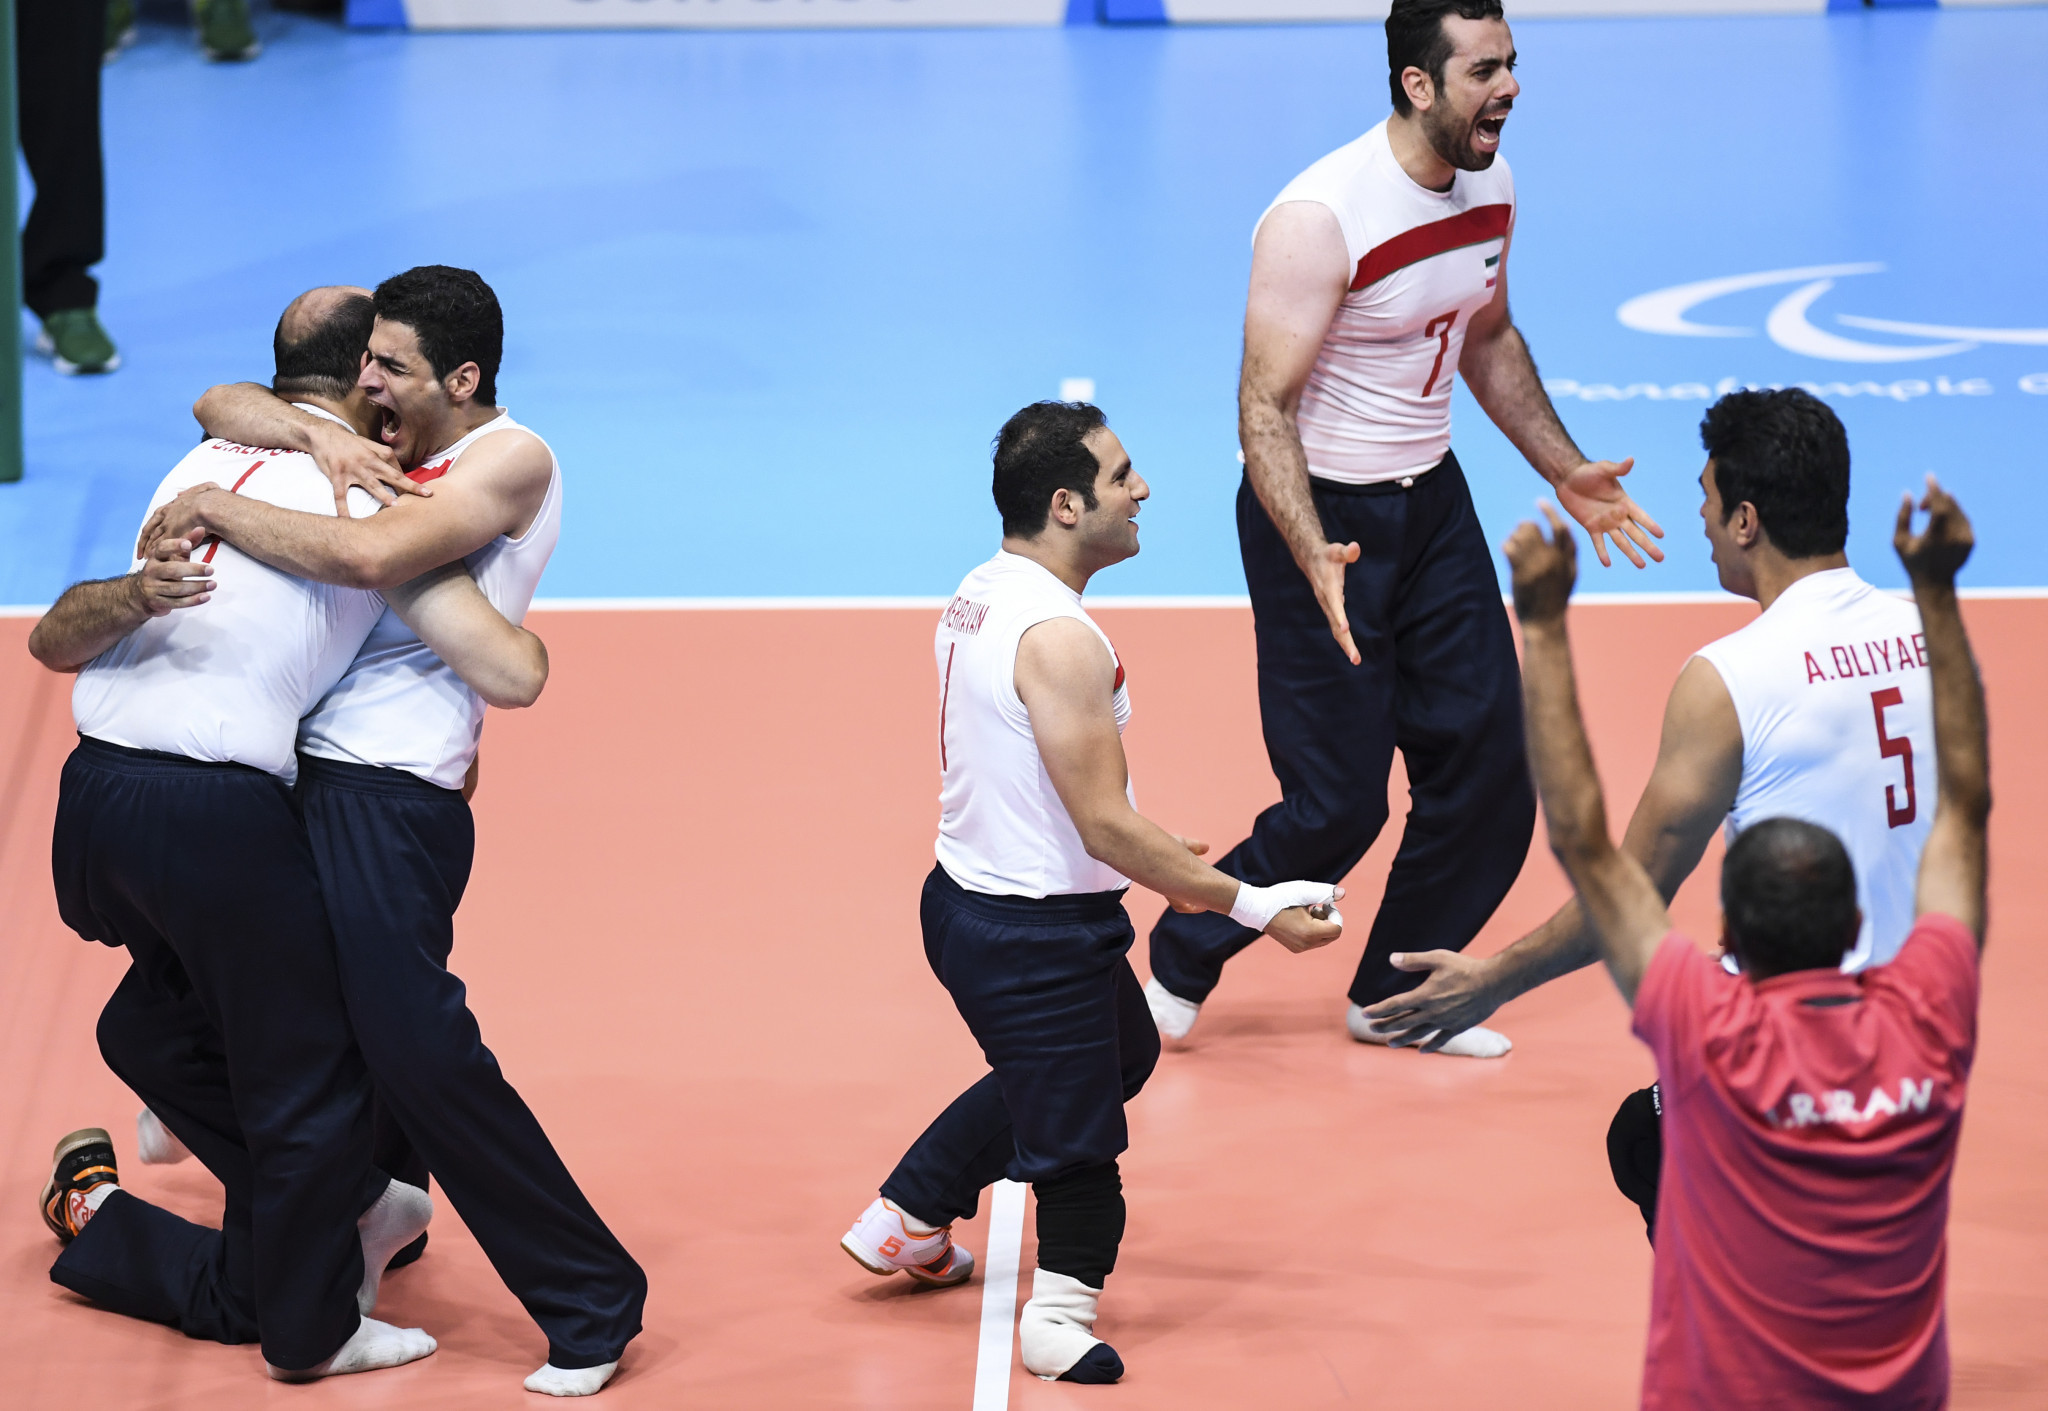 Iran win Men's Sitting Volleyball World Championships with straight sets victory over Bosnia and Herzegovina